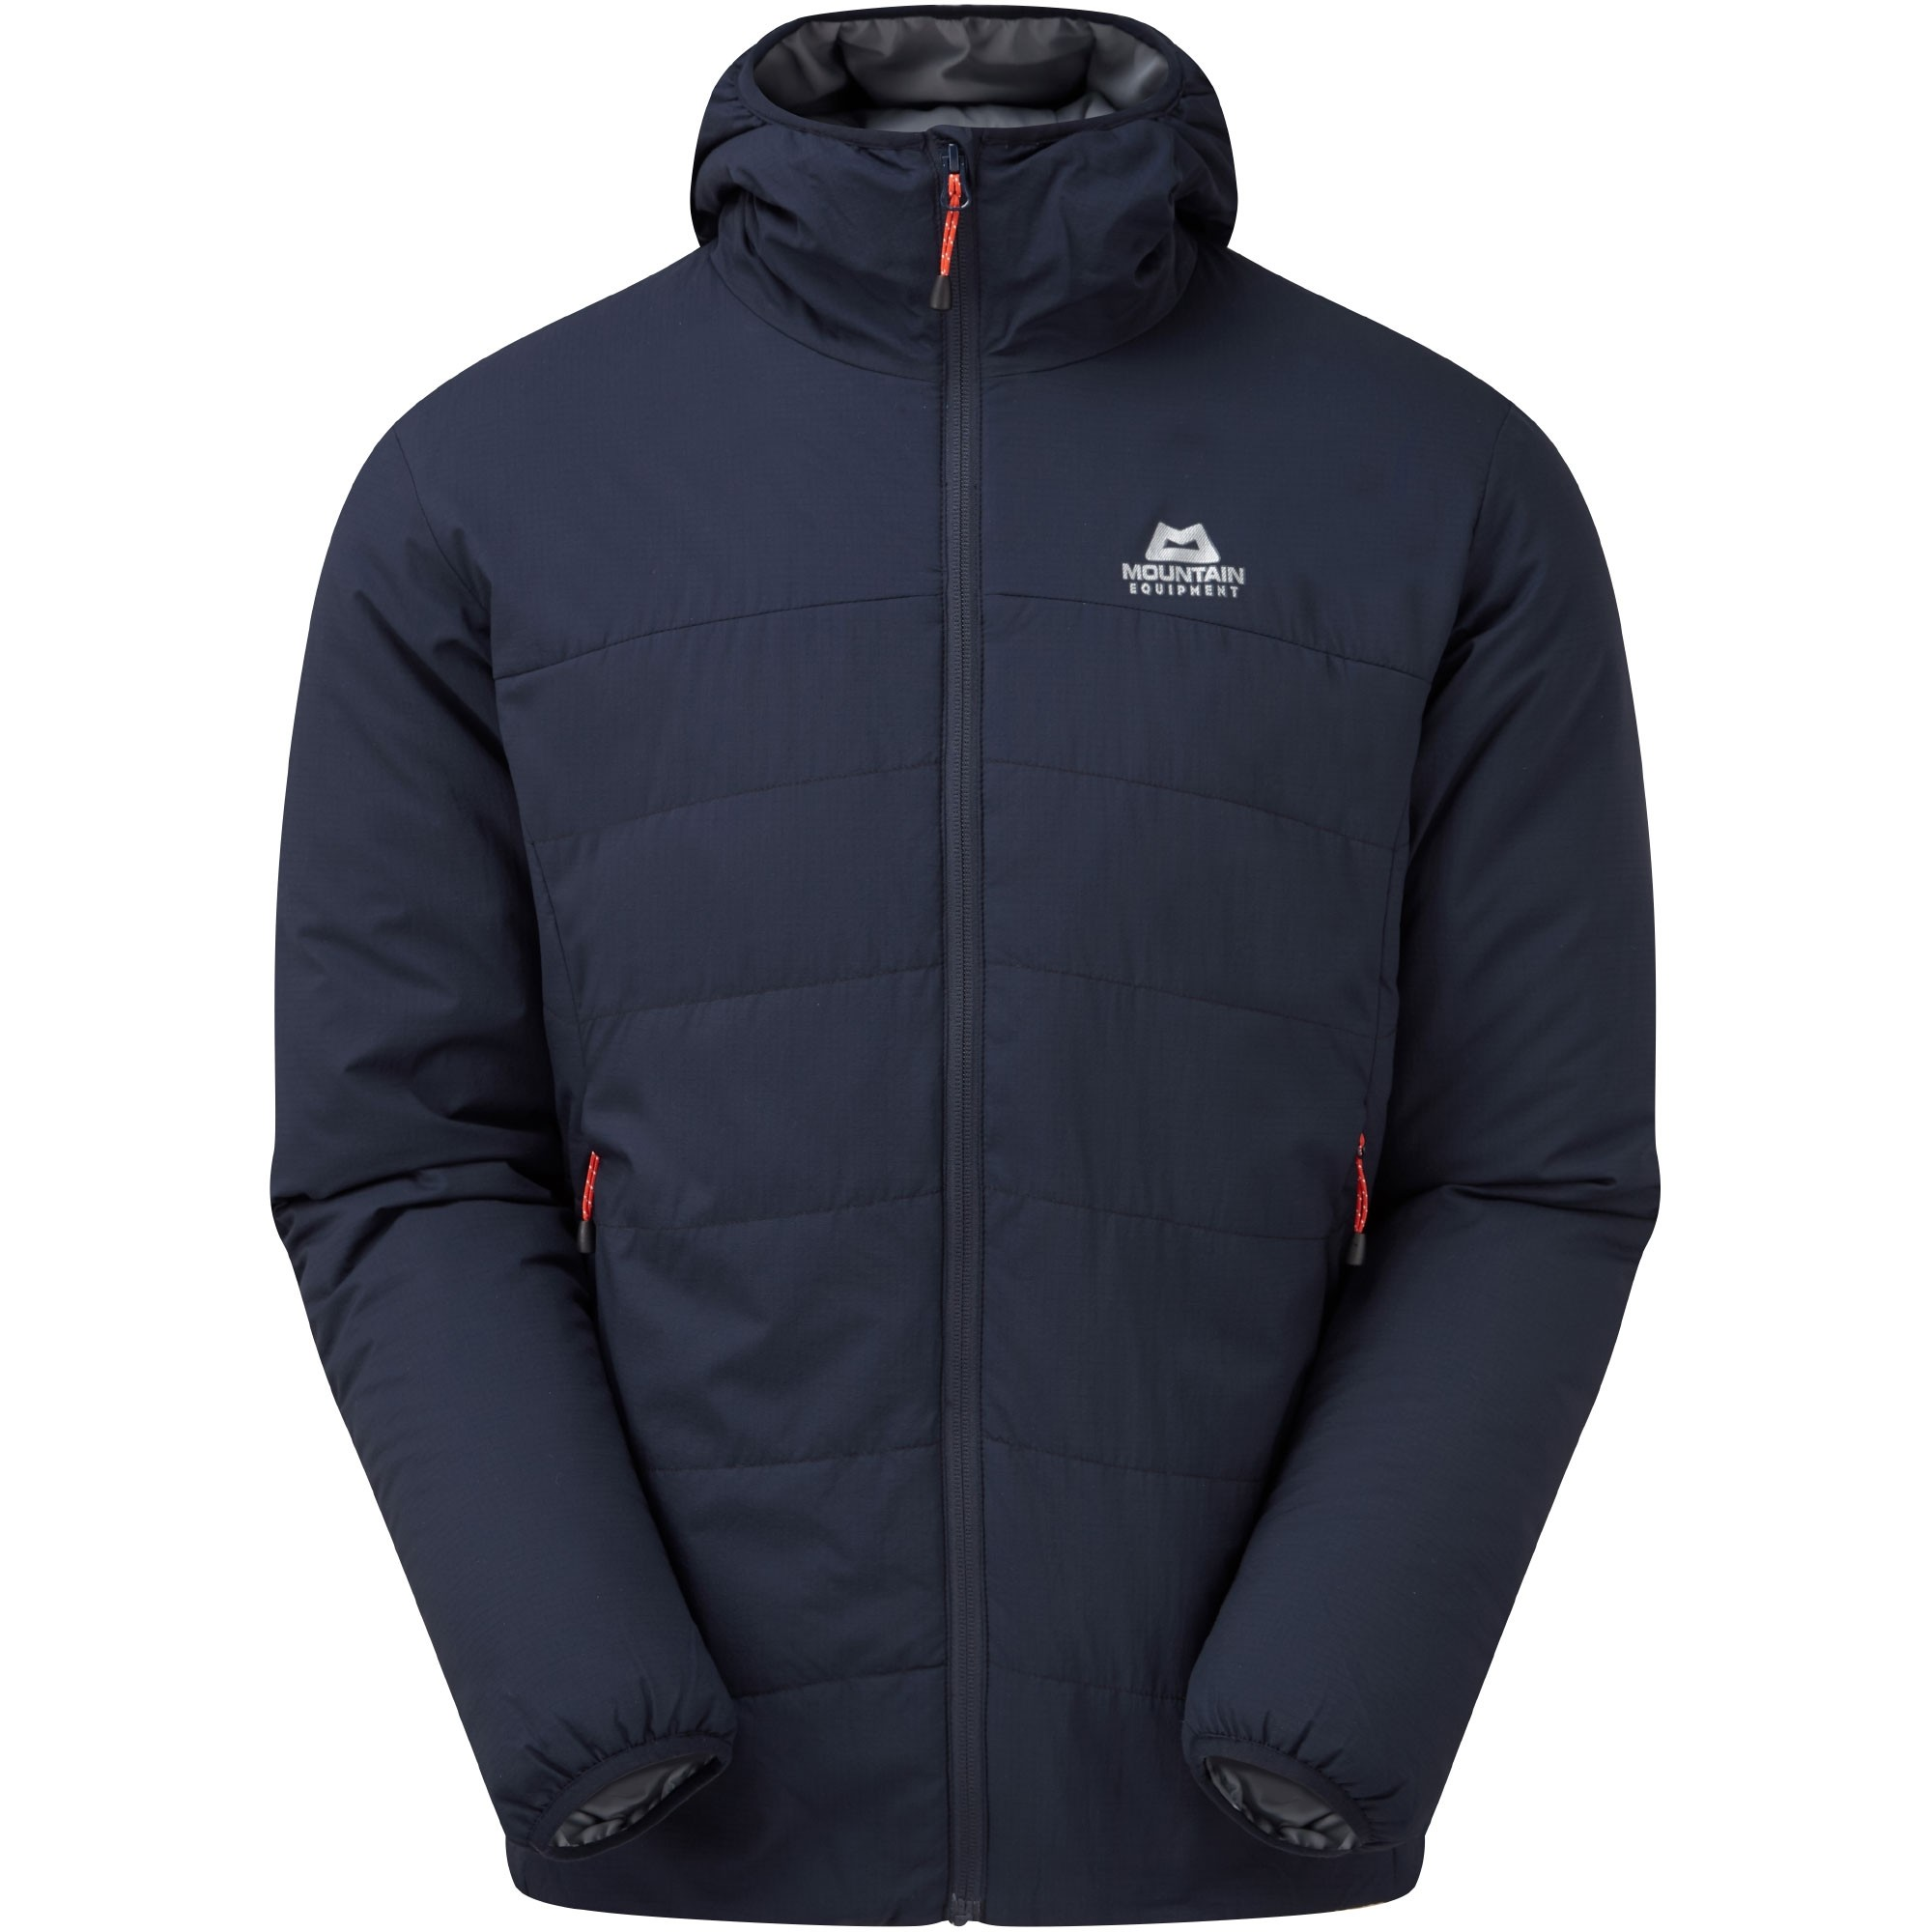 Mountain Equipment Transition Insulated Men's Jacket - Cosmos